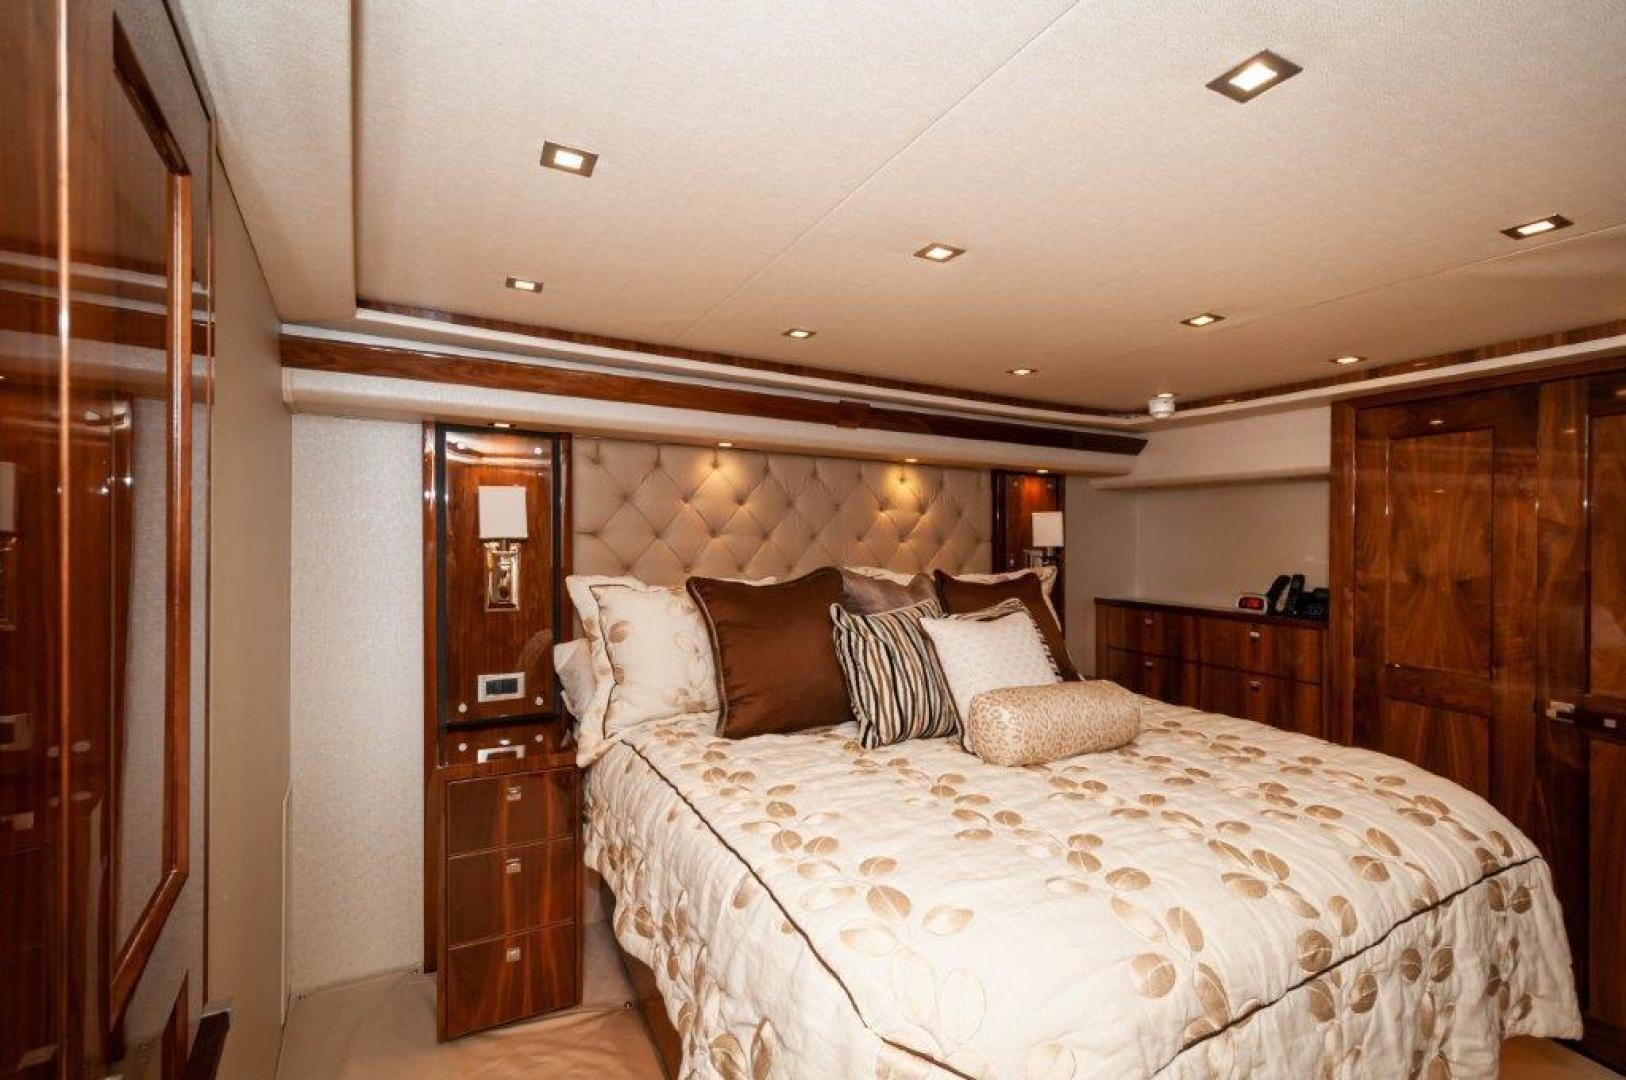 Viking-72 Enclosed Bridge 2017-SHARE E Orange Beach-Alabama-United States-2017 72 EB Viking SHARE-E Master Stateroom-1361362 | Thumbnail